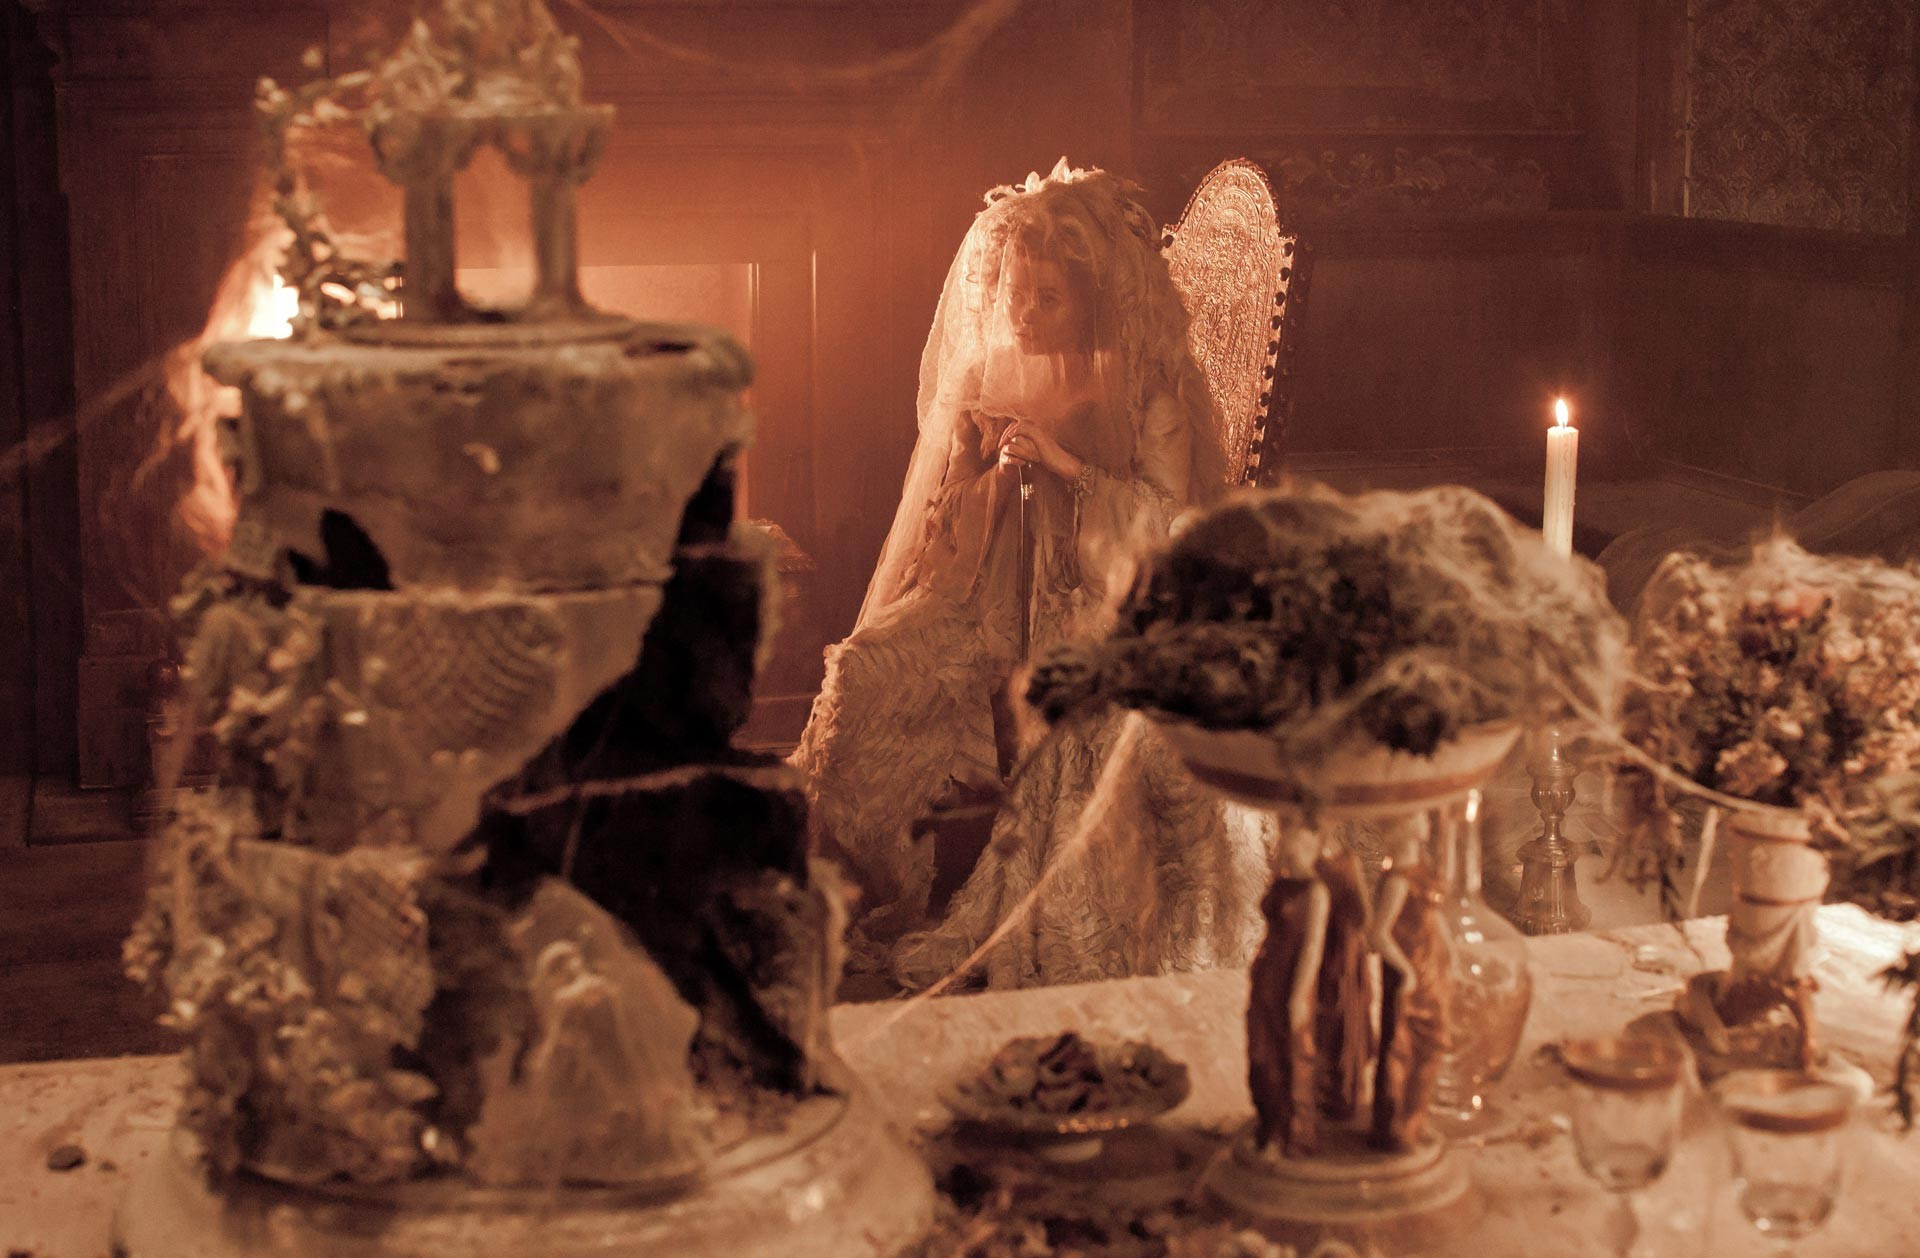 Table and wedding cake expecations omg03 Halloween Miss Havisham